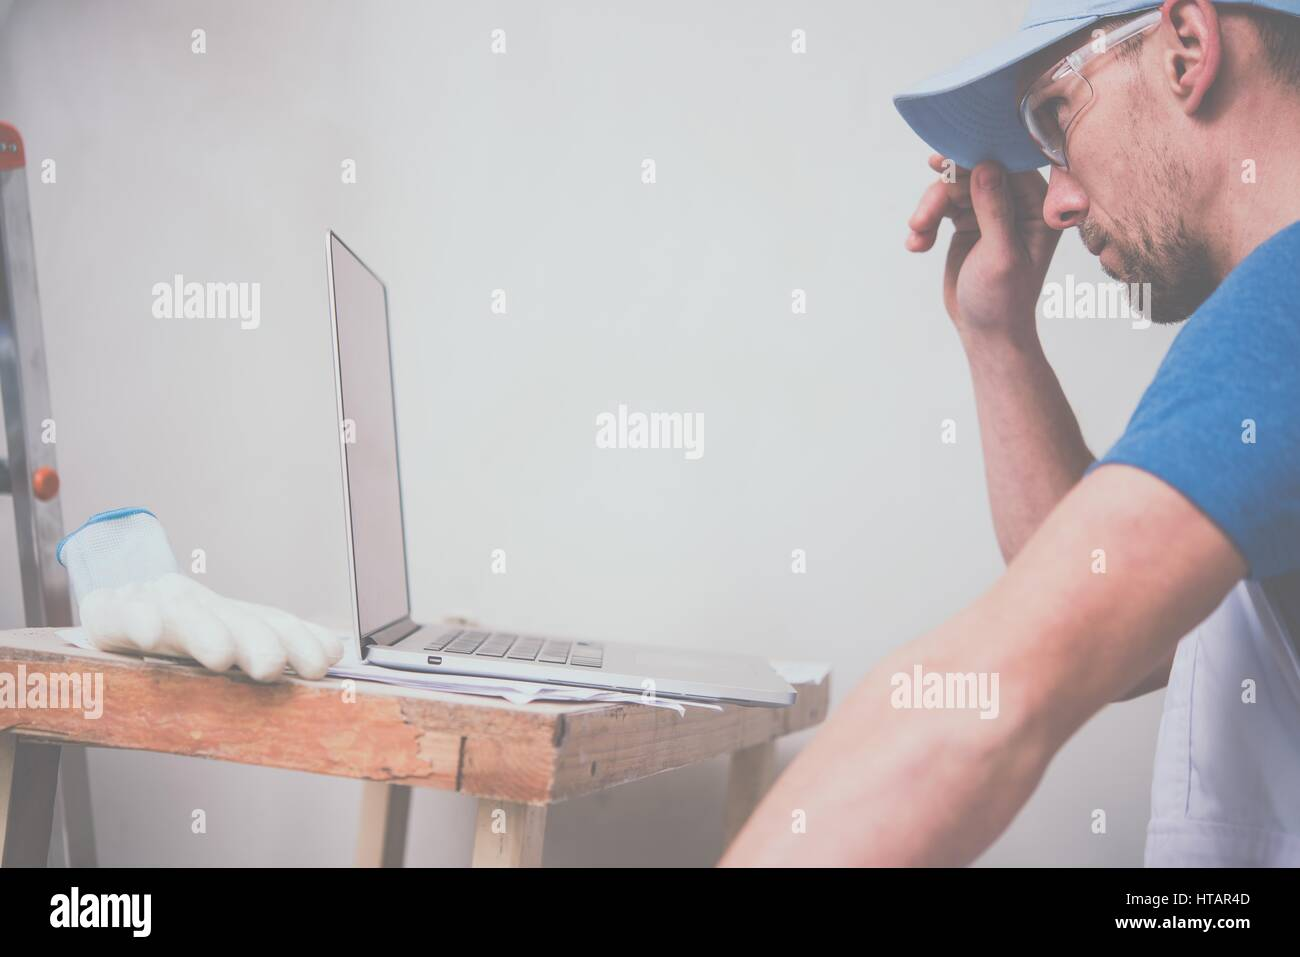 Construction Schedule Laptop Stock Photos   Construction Schedule     Construction Business Concept  Caucasian Worker with Laptop Computer  Checking Project Schedule    Stock Image